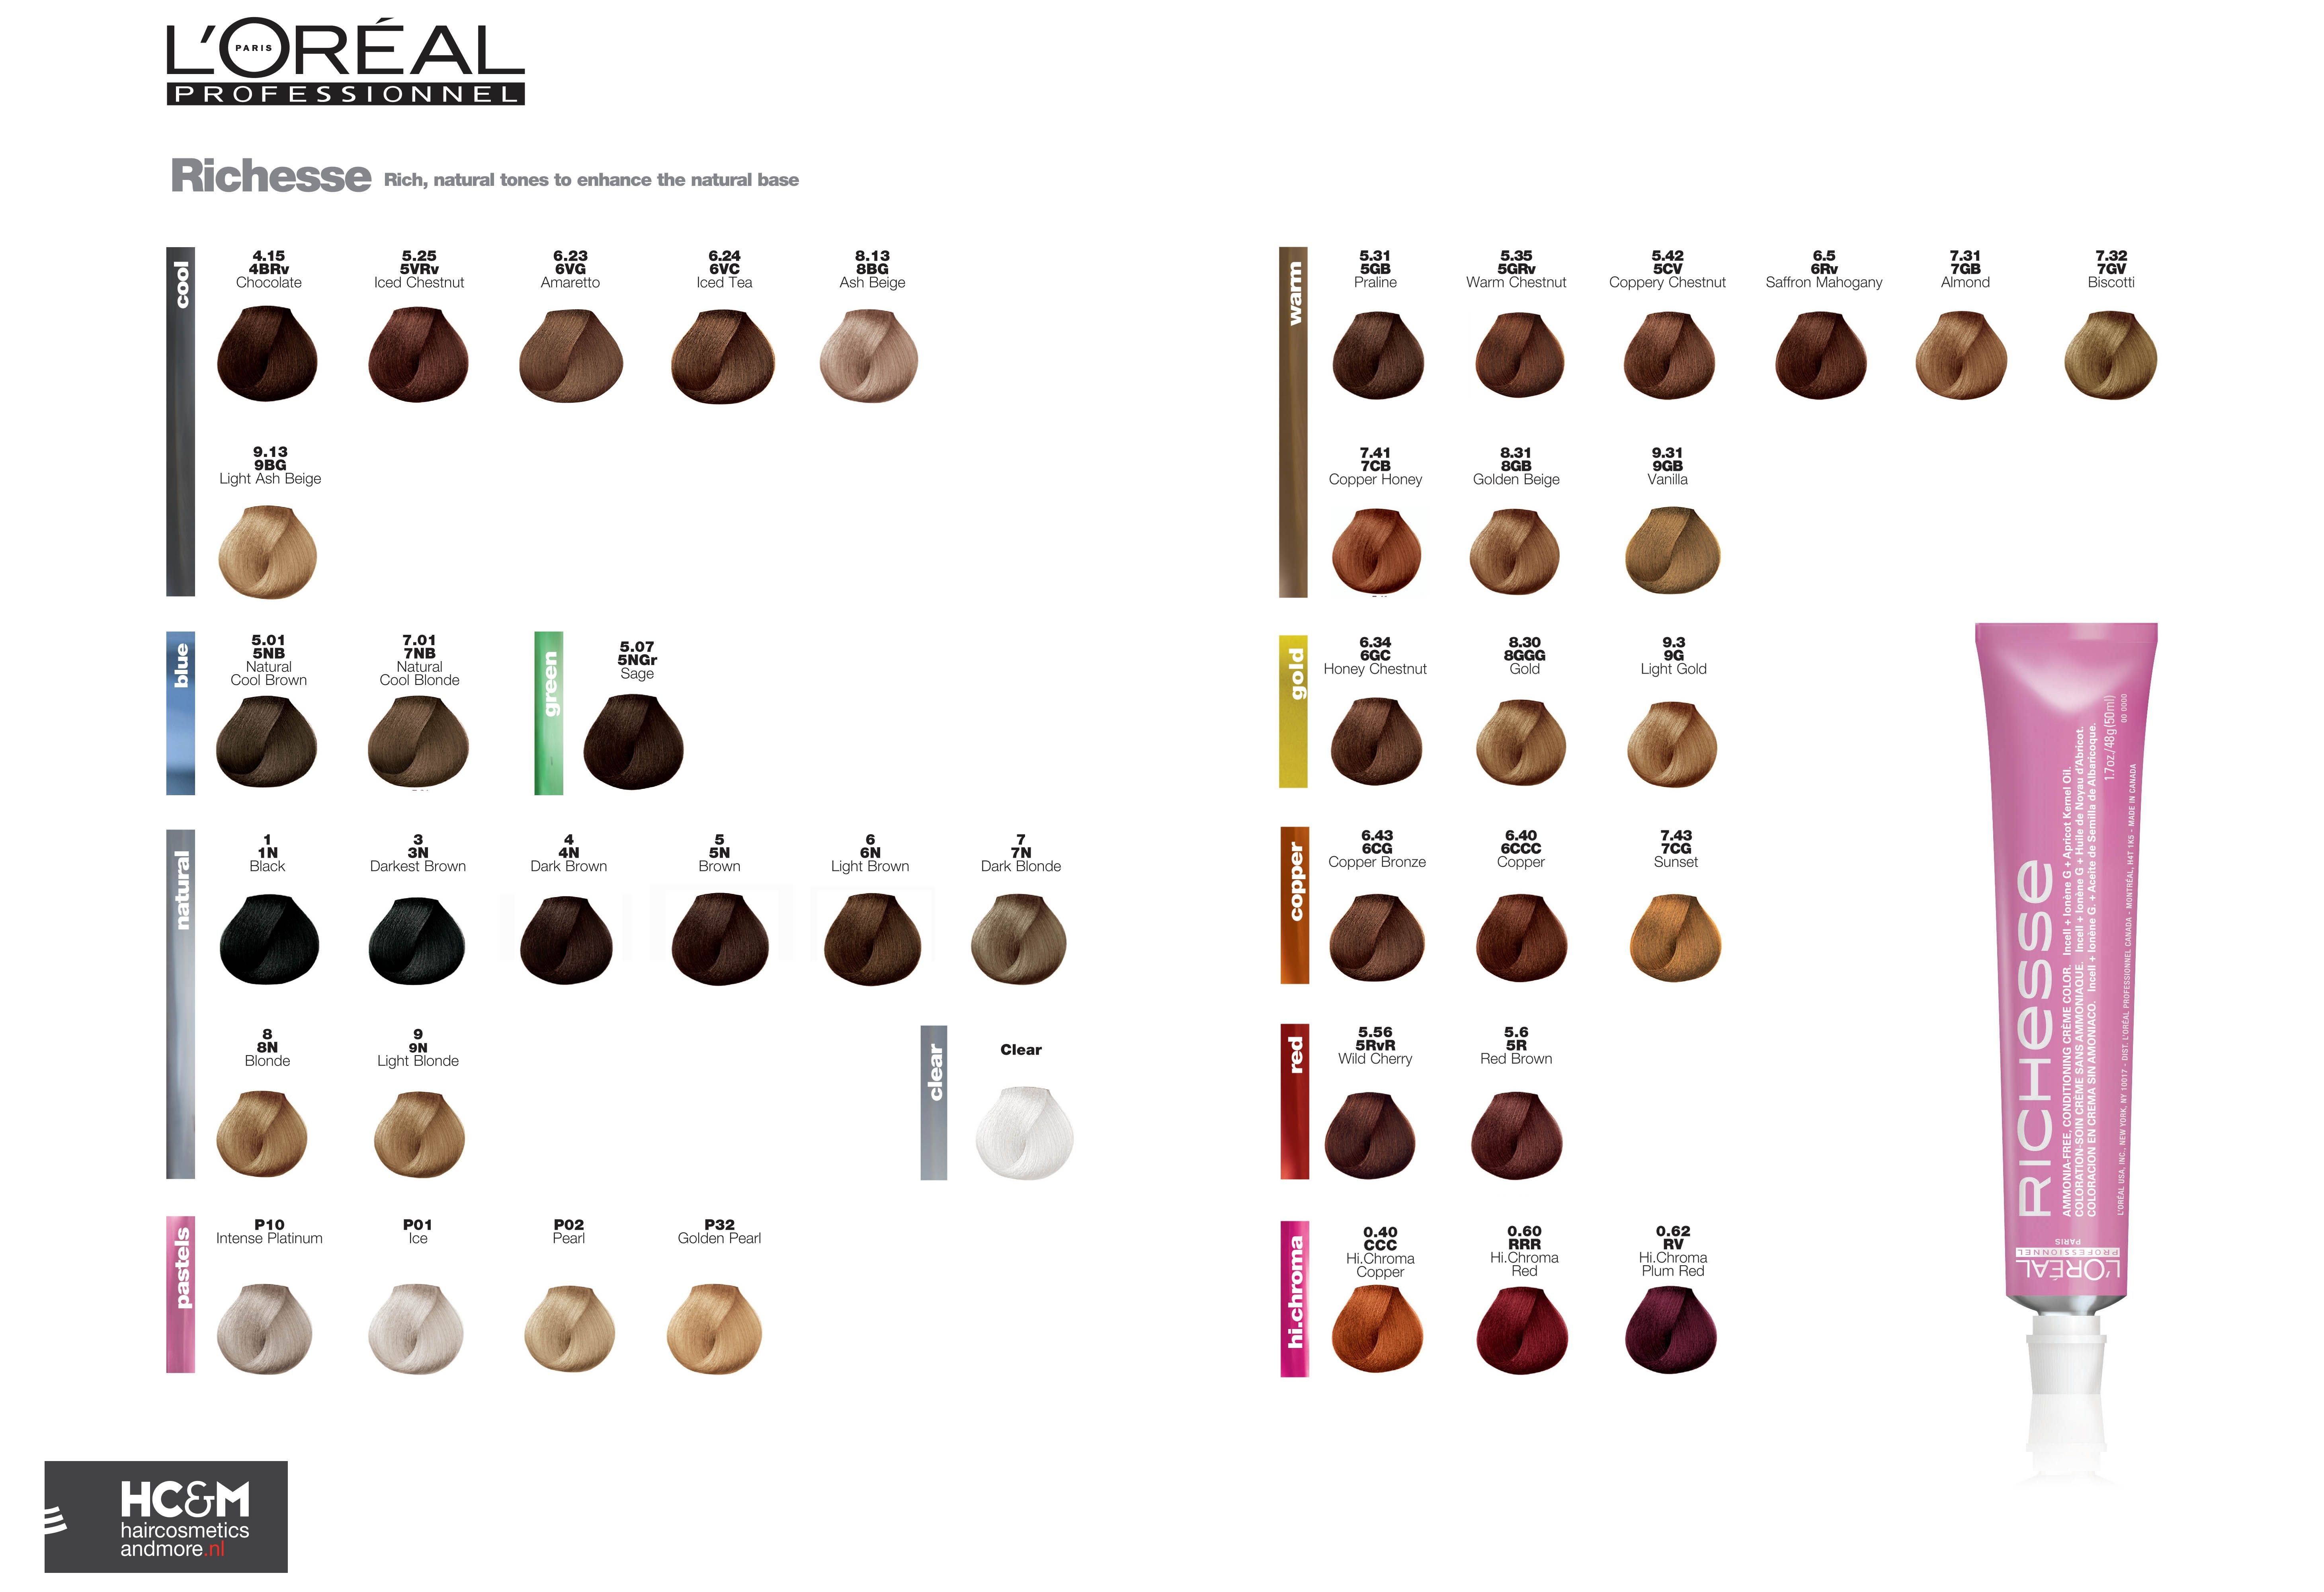 Loral professionnel richesse color chart loral loral professionnel richesse color chart nvjuhfo Images